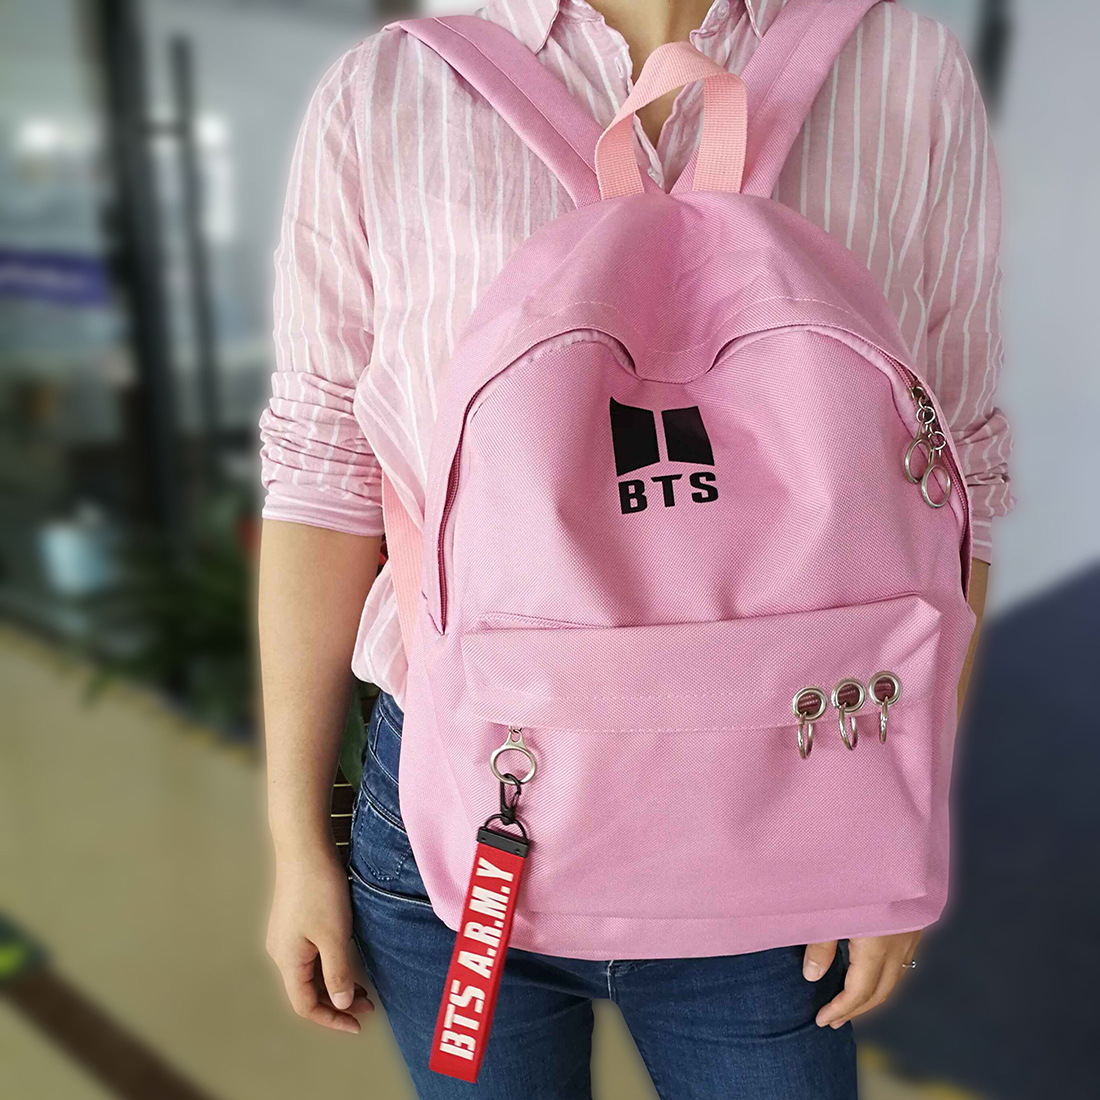 new kpop bts Bangtan Boys jimin suga jung kook Male and female students Canvas Backpack backpack Korean version of the trend bag mshg alligator skin new female bag korean version of the trend of hand painted handbags european and american fashion middle age